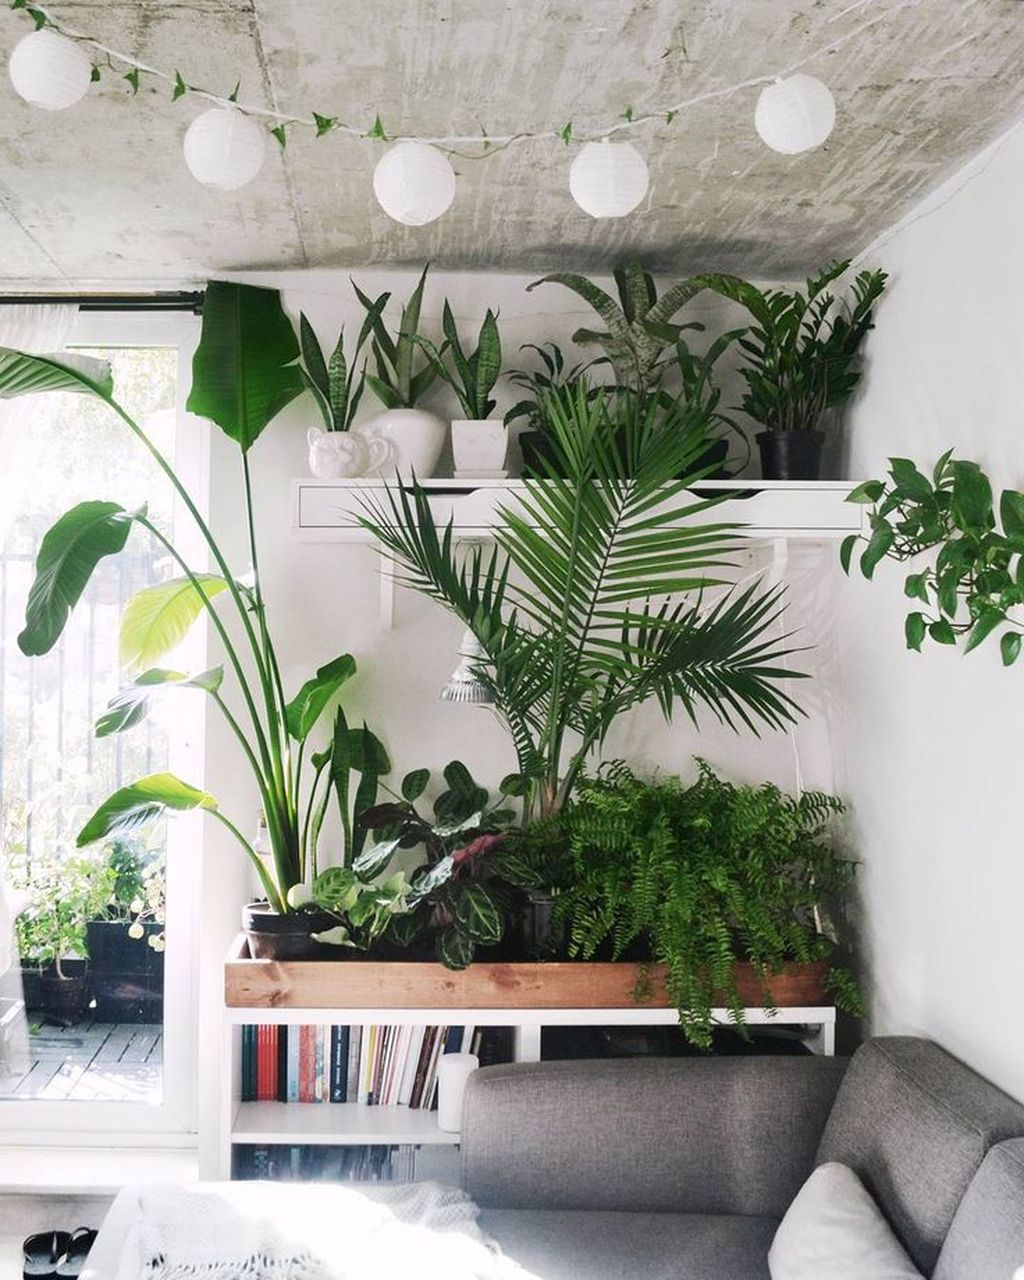 Inspiring Indoor Plans Garden Ideas To Makes Your Home More Cozier 71